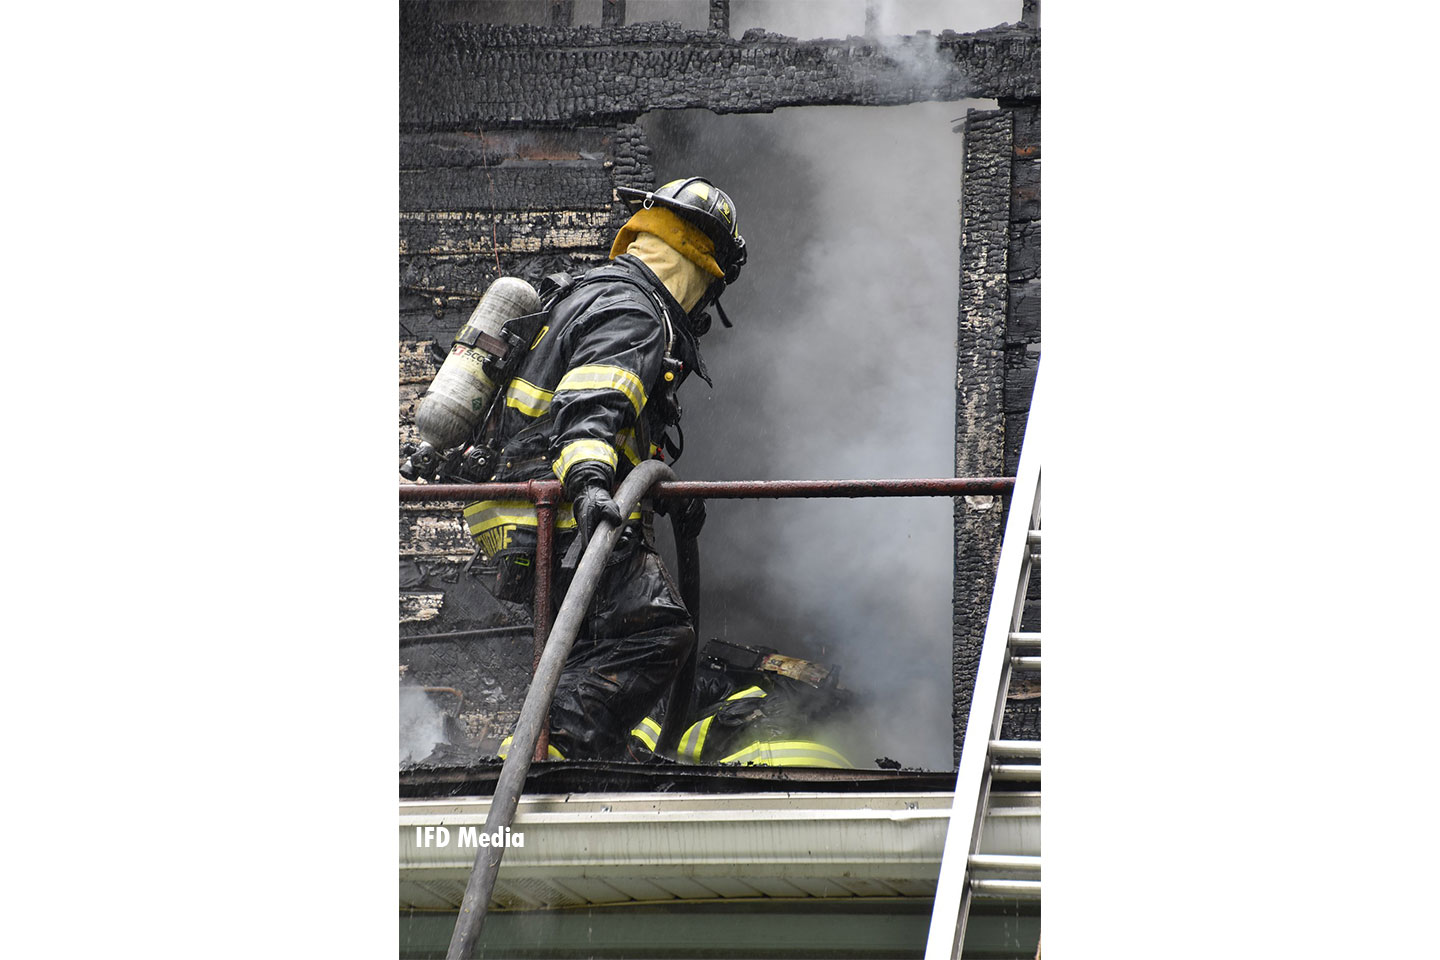 Firefighters working at the scene of a fire in Indianapolis.